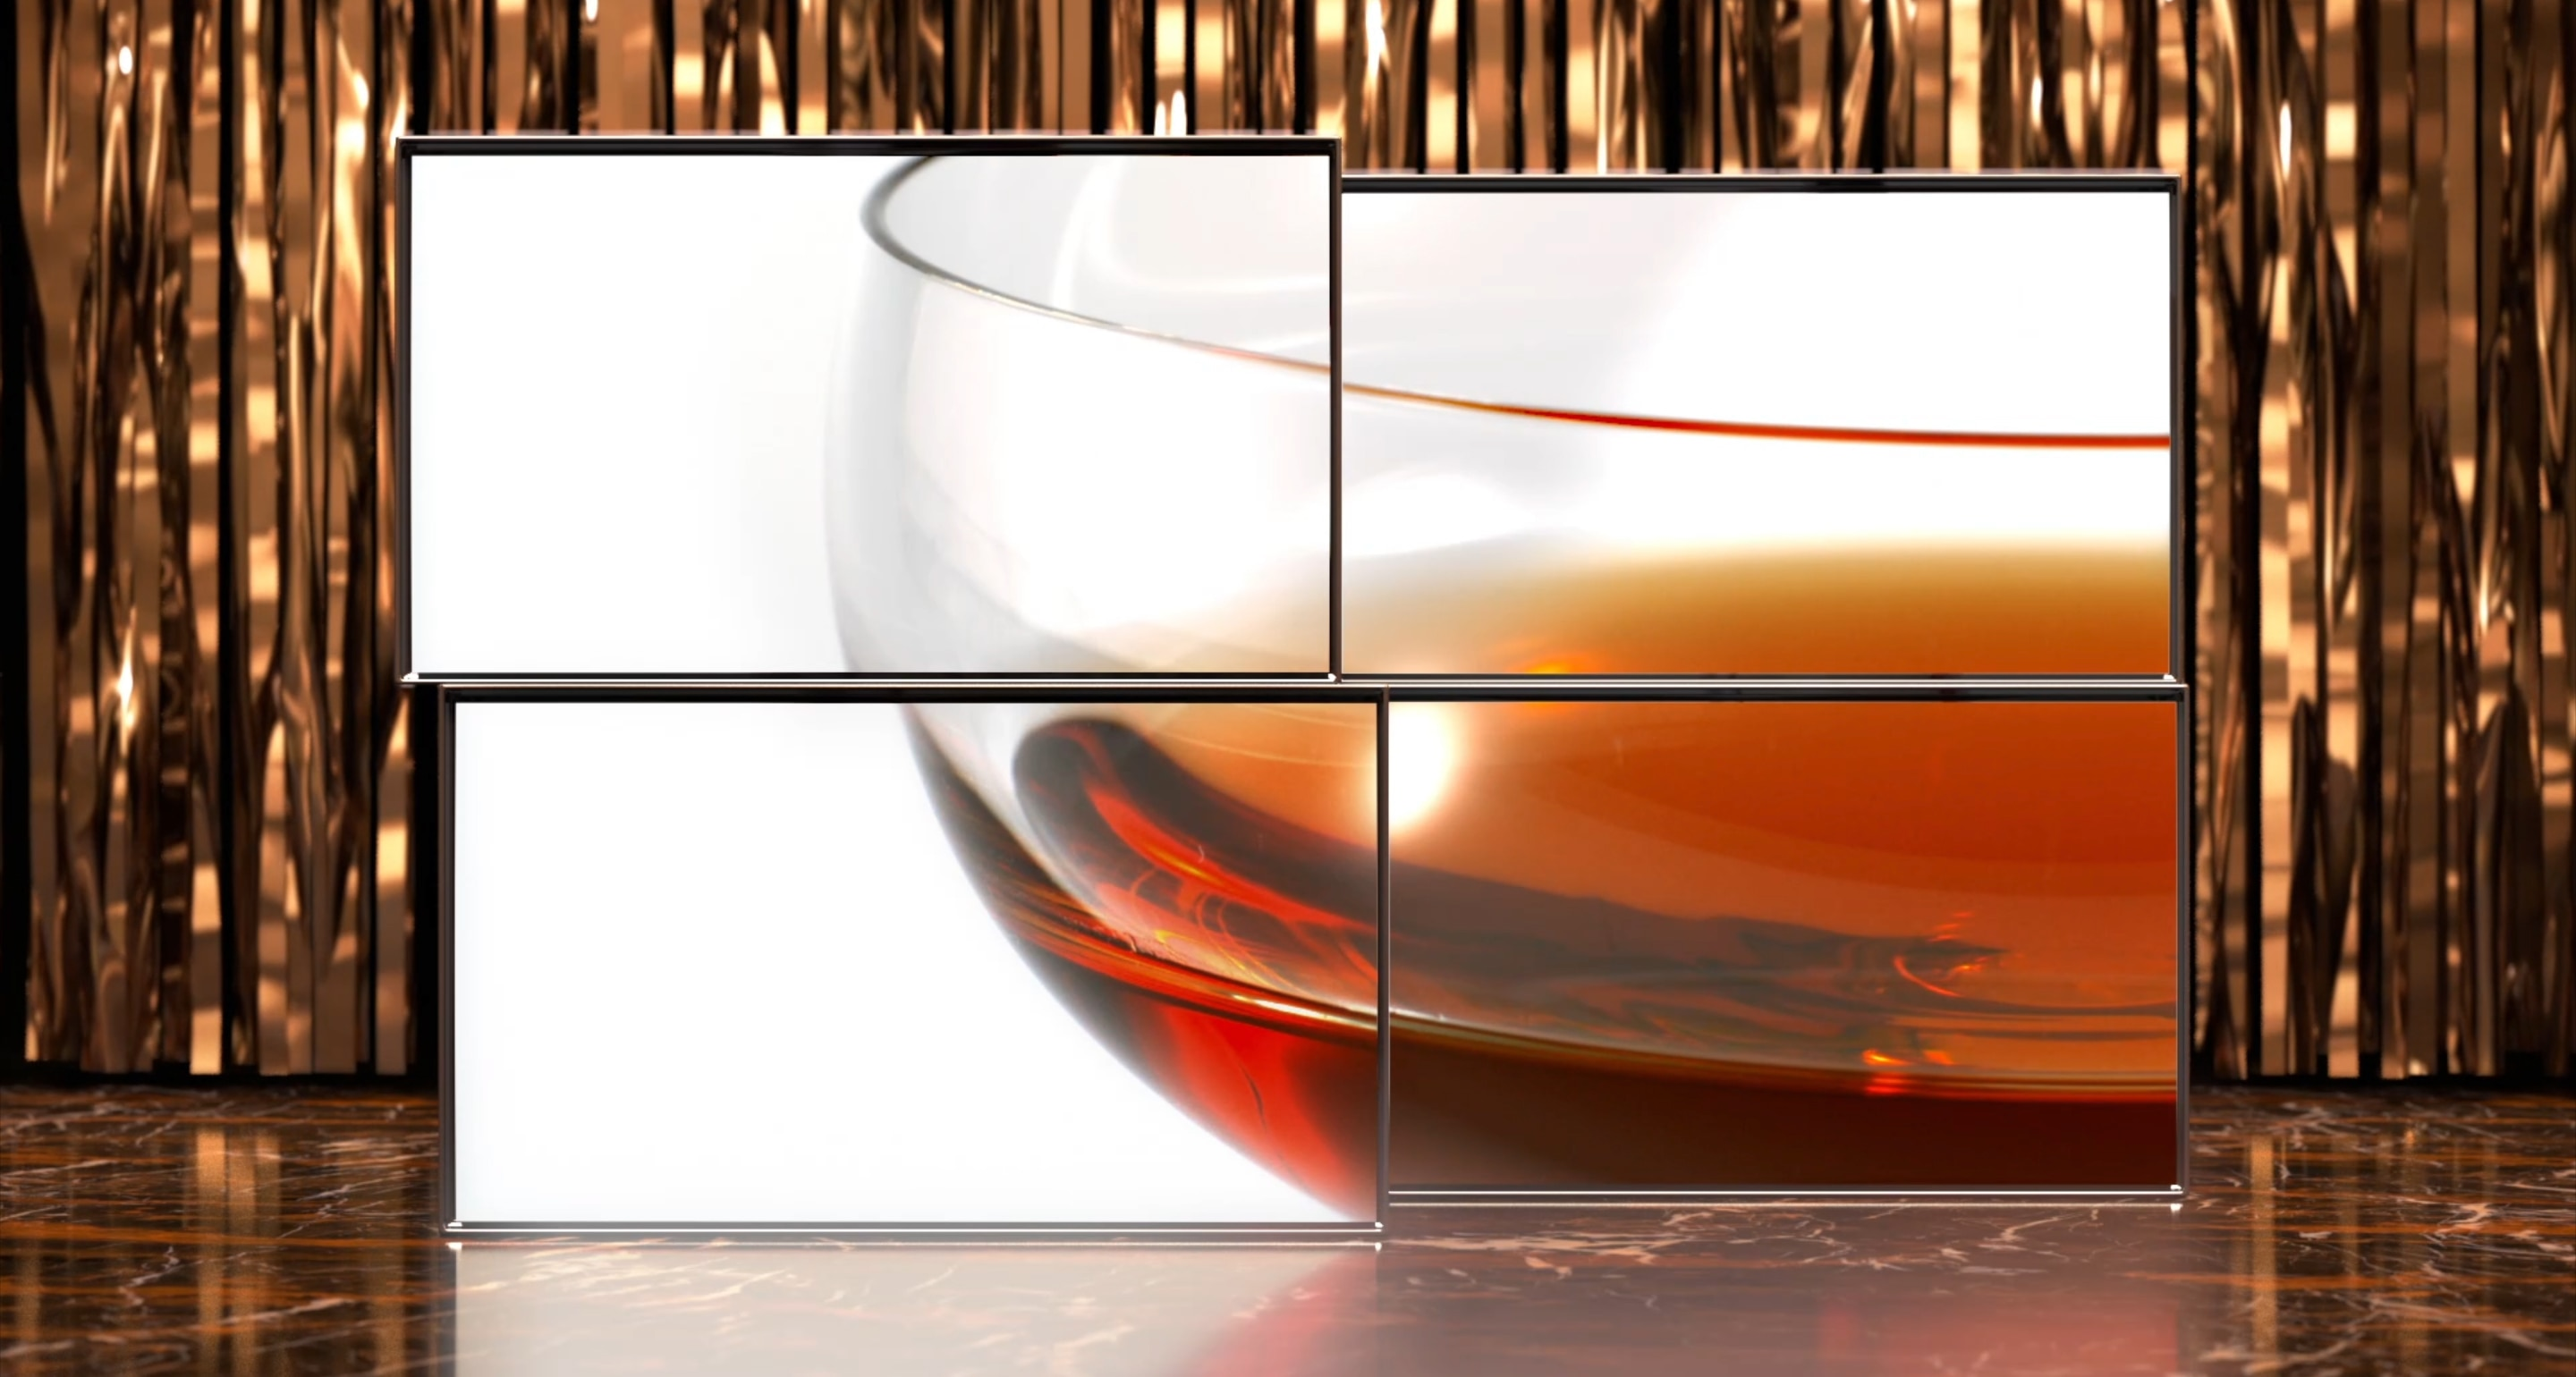 HENNESSY MANHATTAN COCKTAIL RECIPE